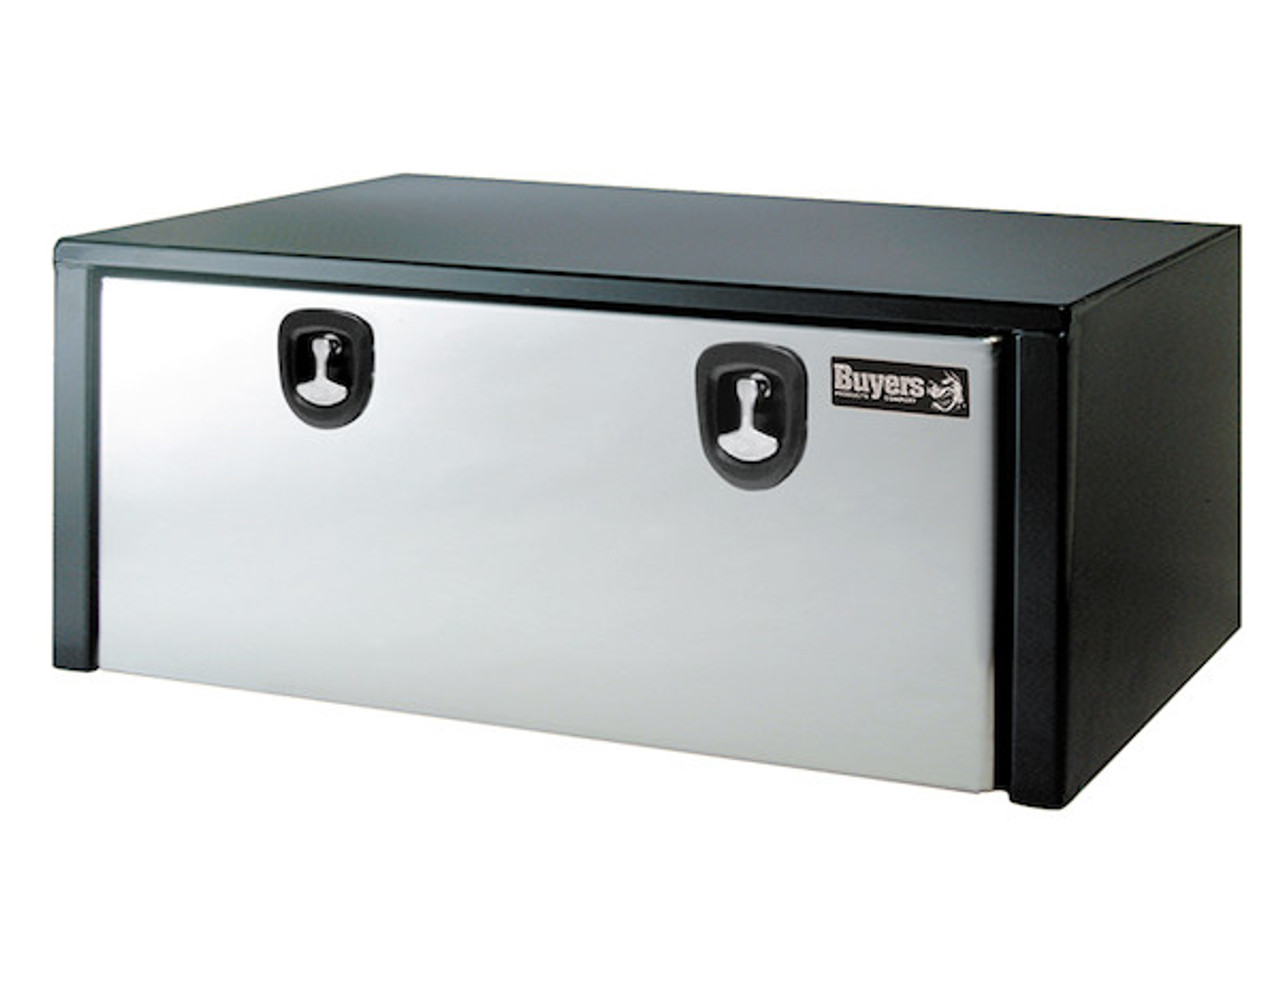 1702715 BUYERS PRODUCTS BLACK STEEL UNDERBODY TRUCK BOX WITH STAINLESS STEEL DOOR TOOLBOX